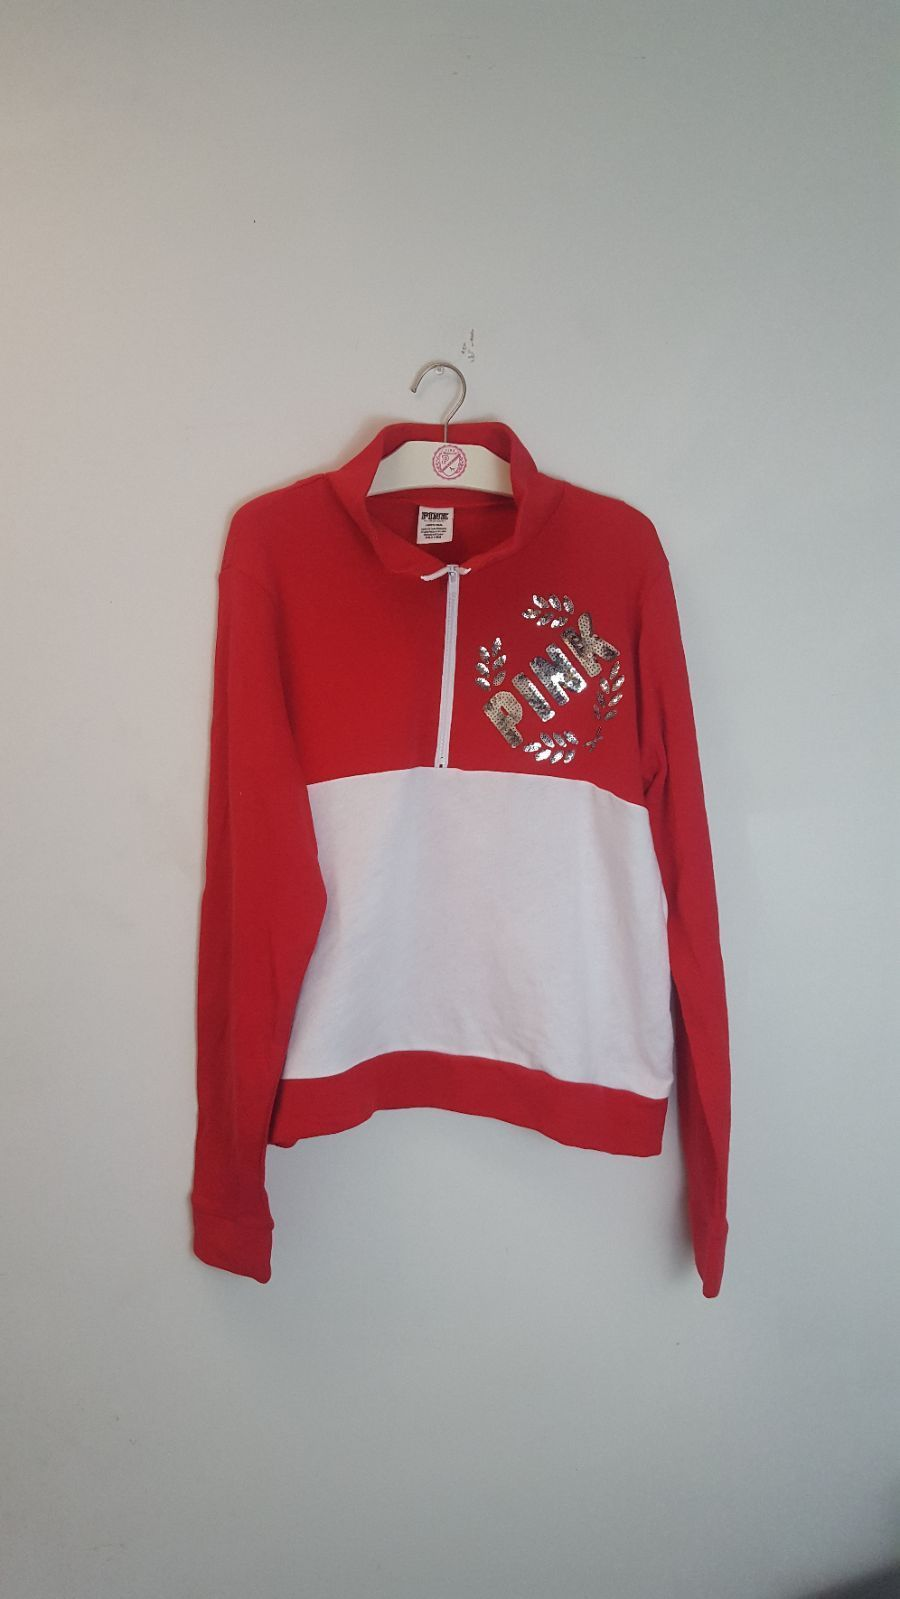 NWOT VS PINK L Bling Half Zip Sweater - Mercari: BUY & SELL THINGS ...